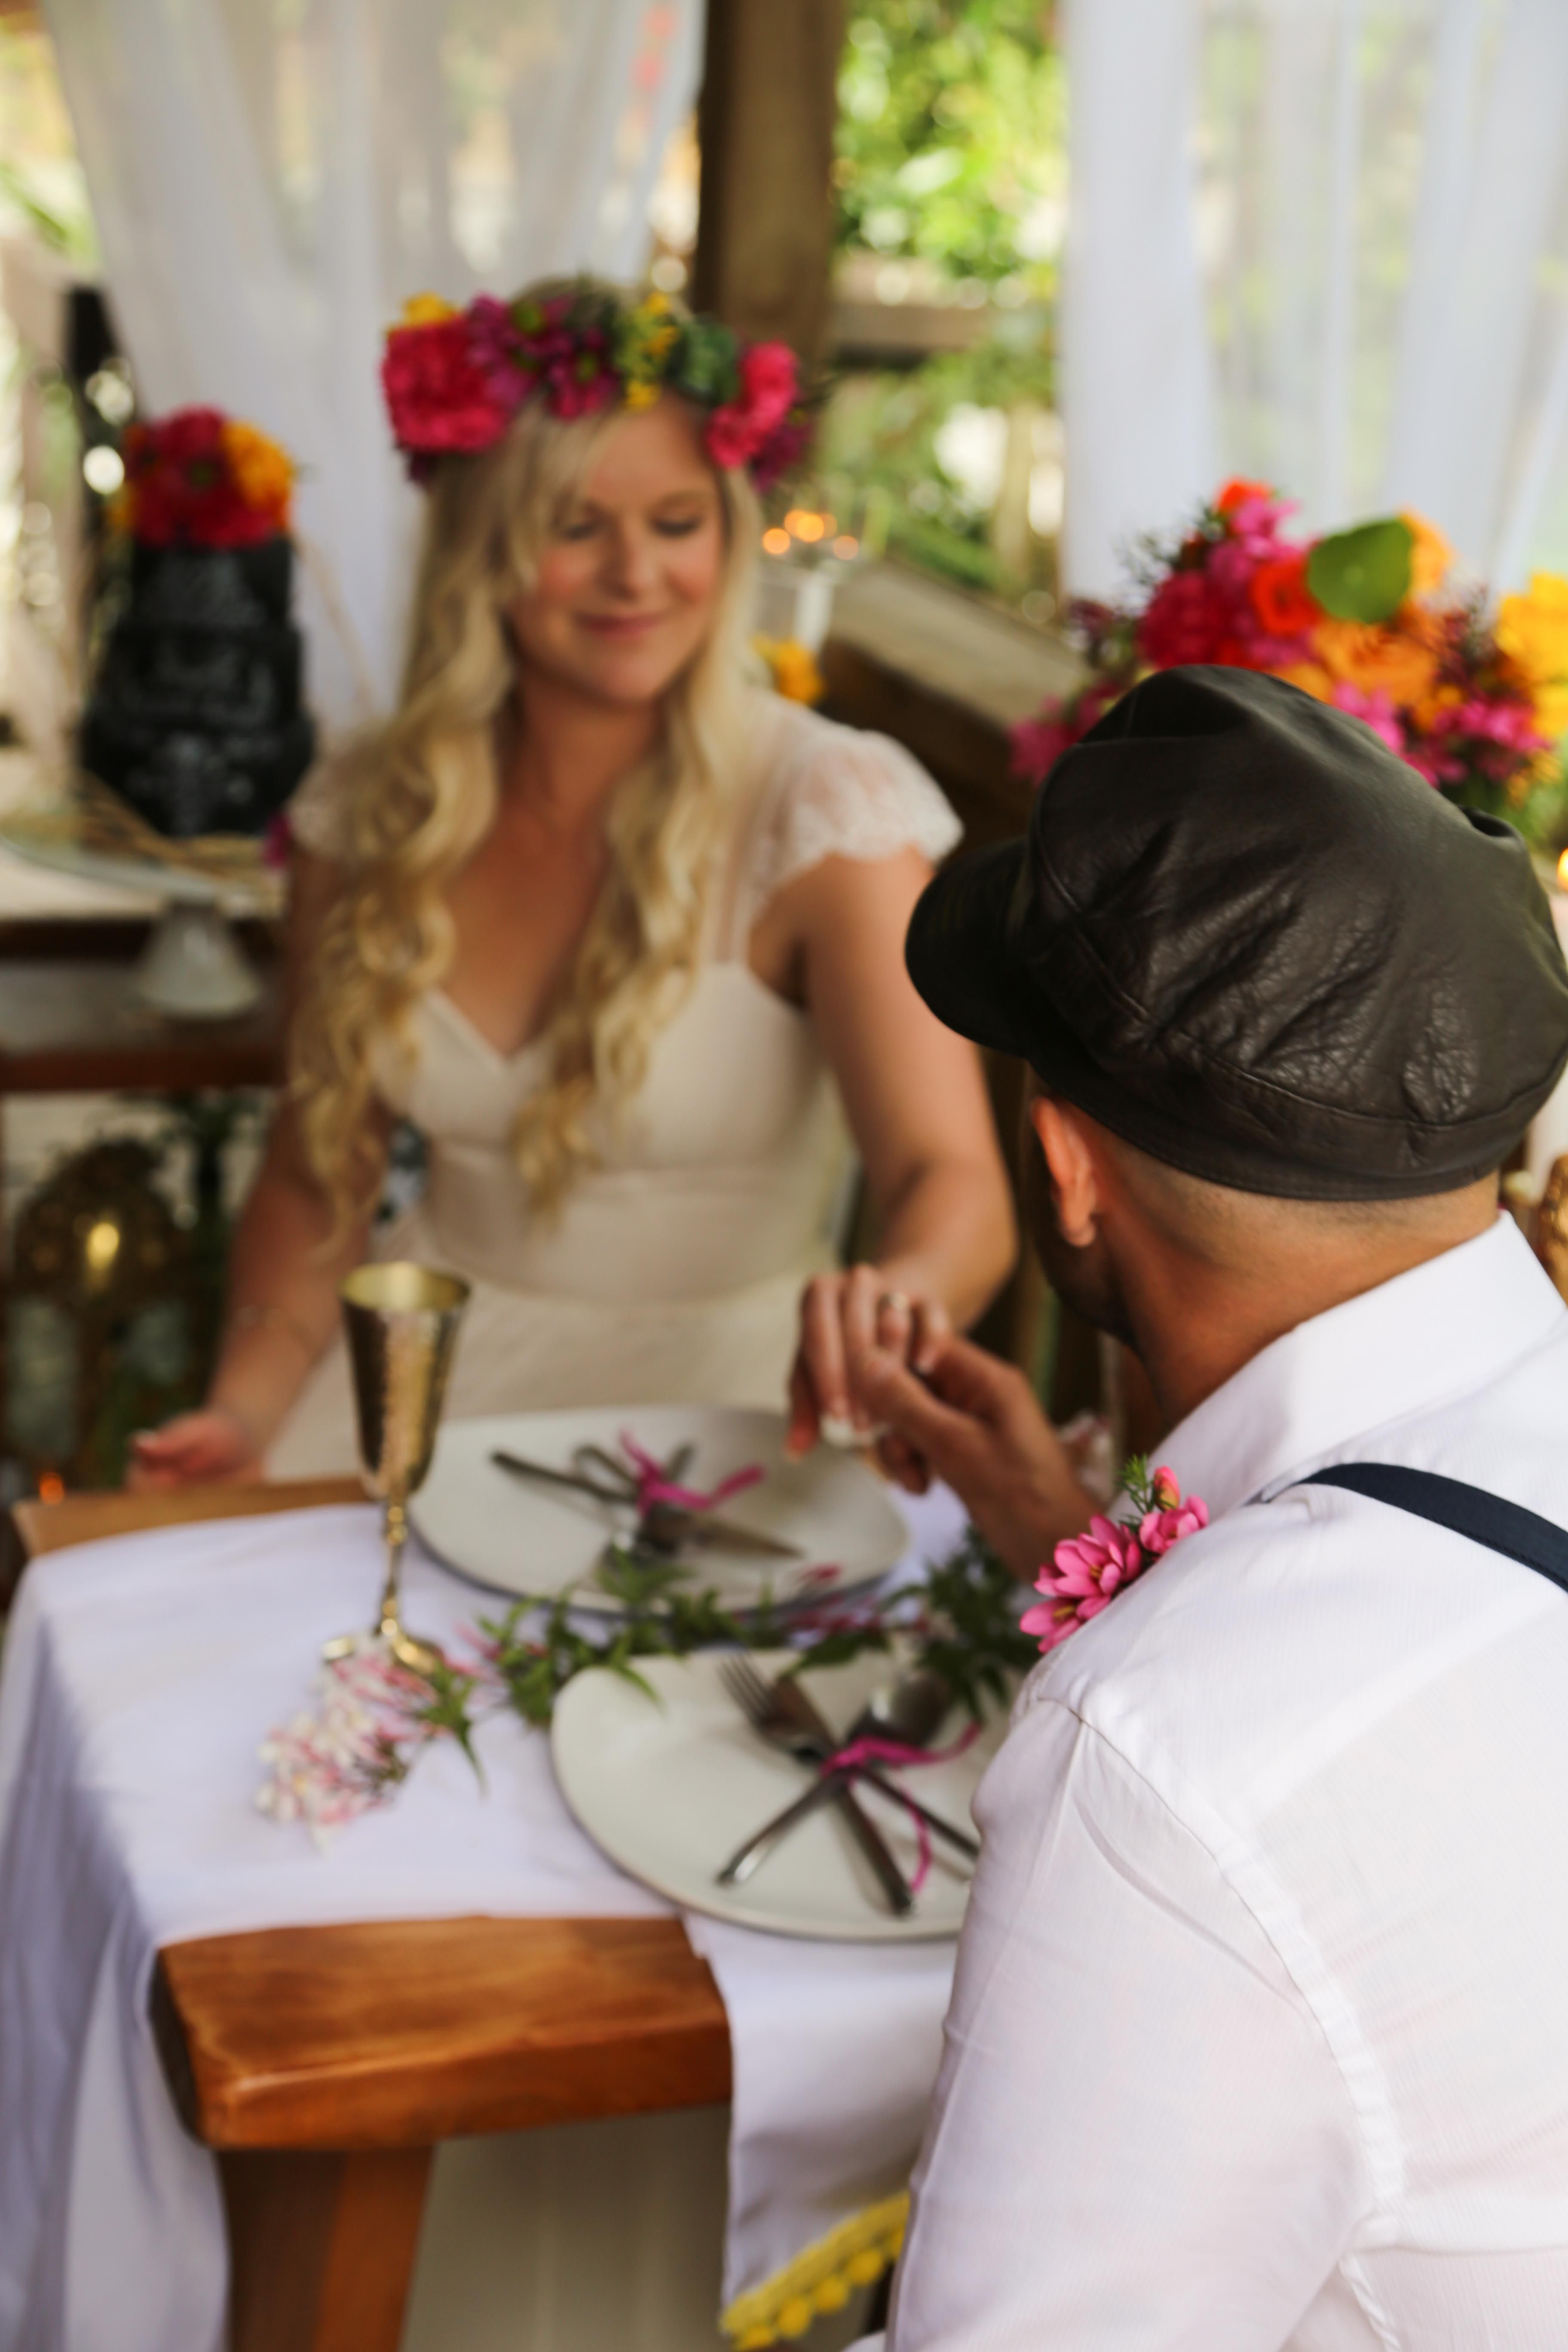 Romantic and intimate dinner for two at www.hushaccommodation.co.nz